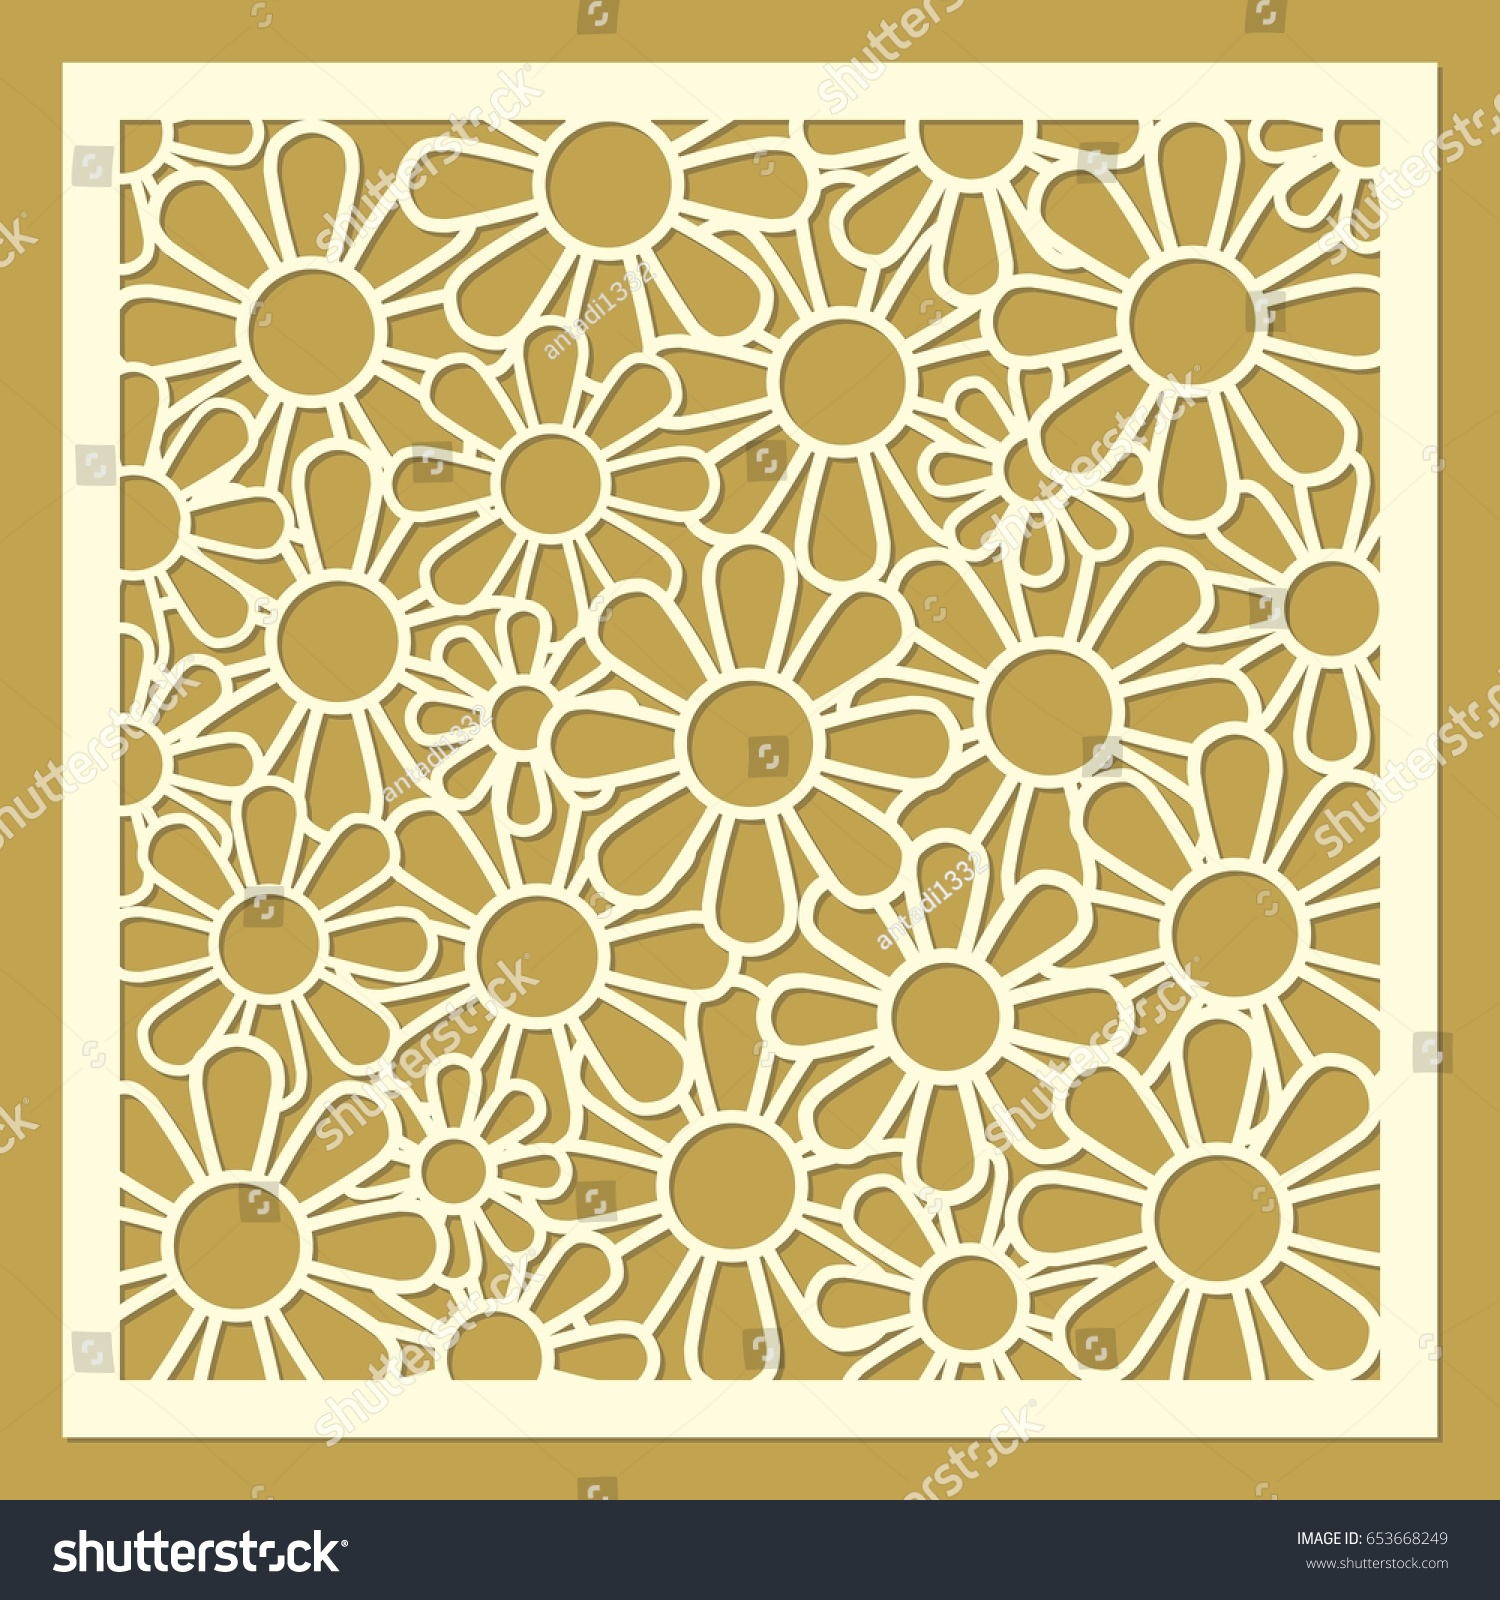 Daisy Flower Ornament Laser Cut Template Stock Vector Royalty Free